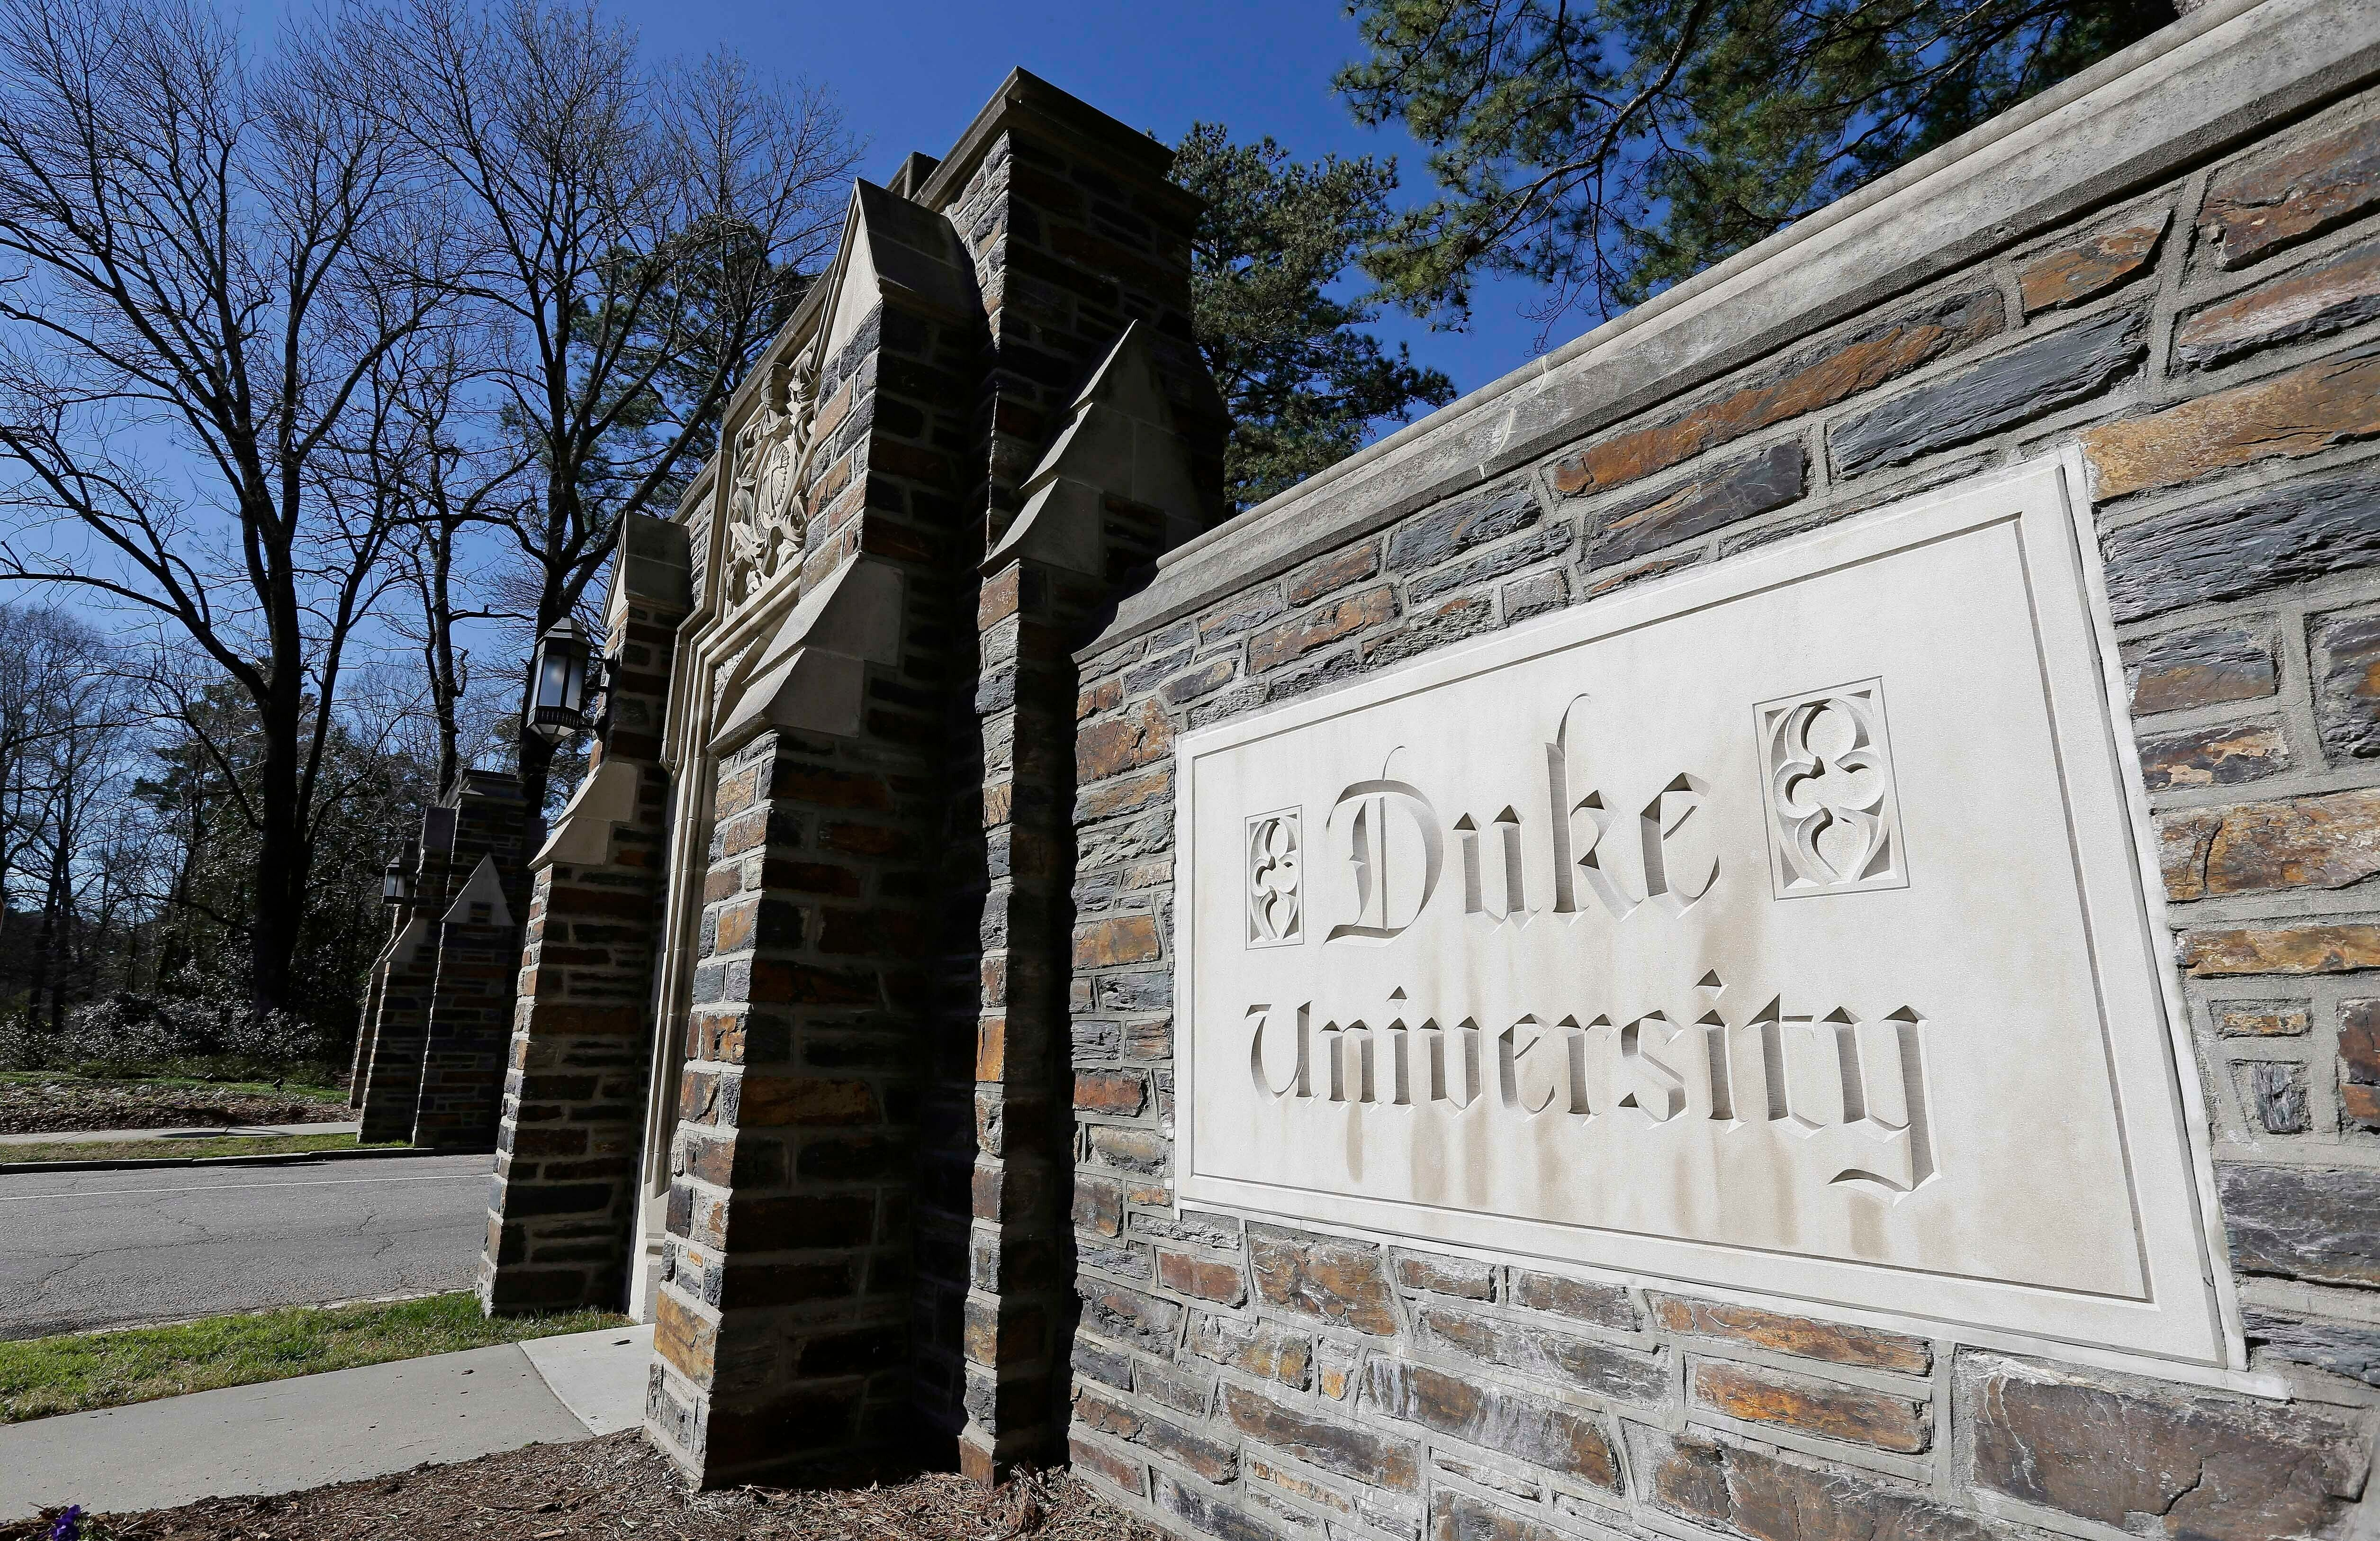 This Jan. 28, 2019 photo shows the entrance to the main Duke University campus in Durham, N.C. The Duke University professor and administrator who sparked an outcry by admonishing students for speaking Chinese has issued a personal apology amid an internal review by the school. (AP Photo/Gerry Broome)